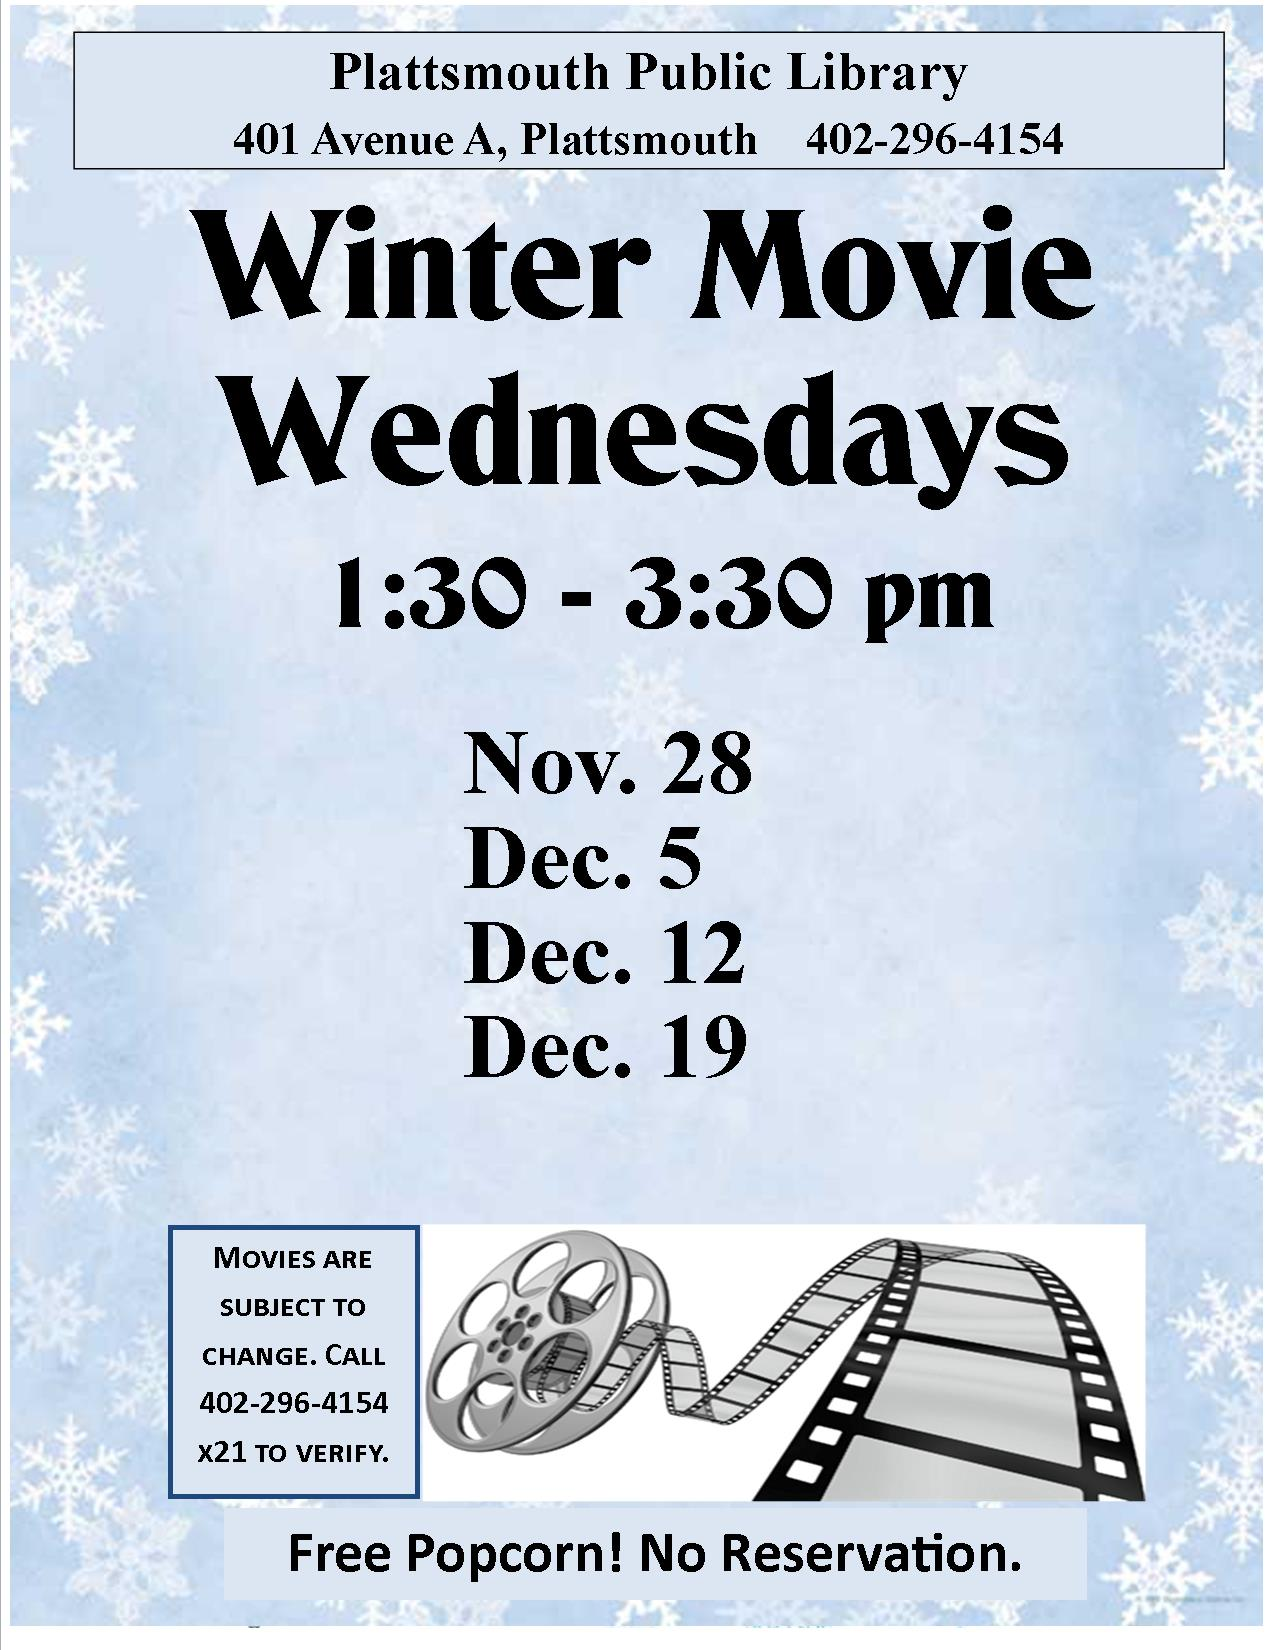 Winter Movie Wednesdays Facebook